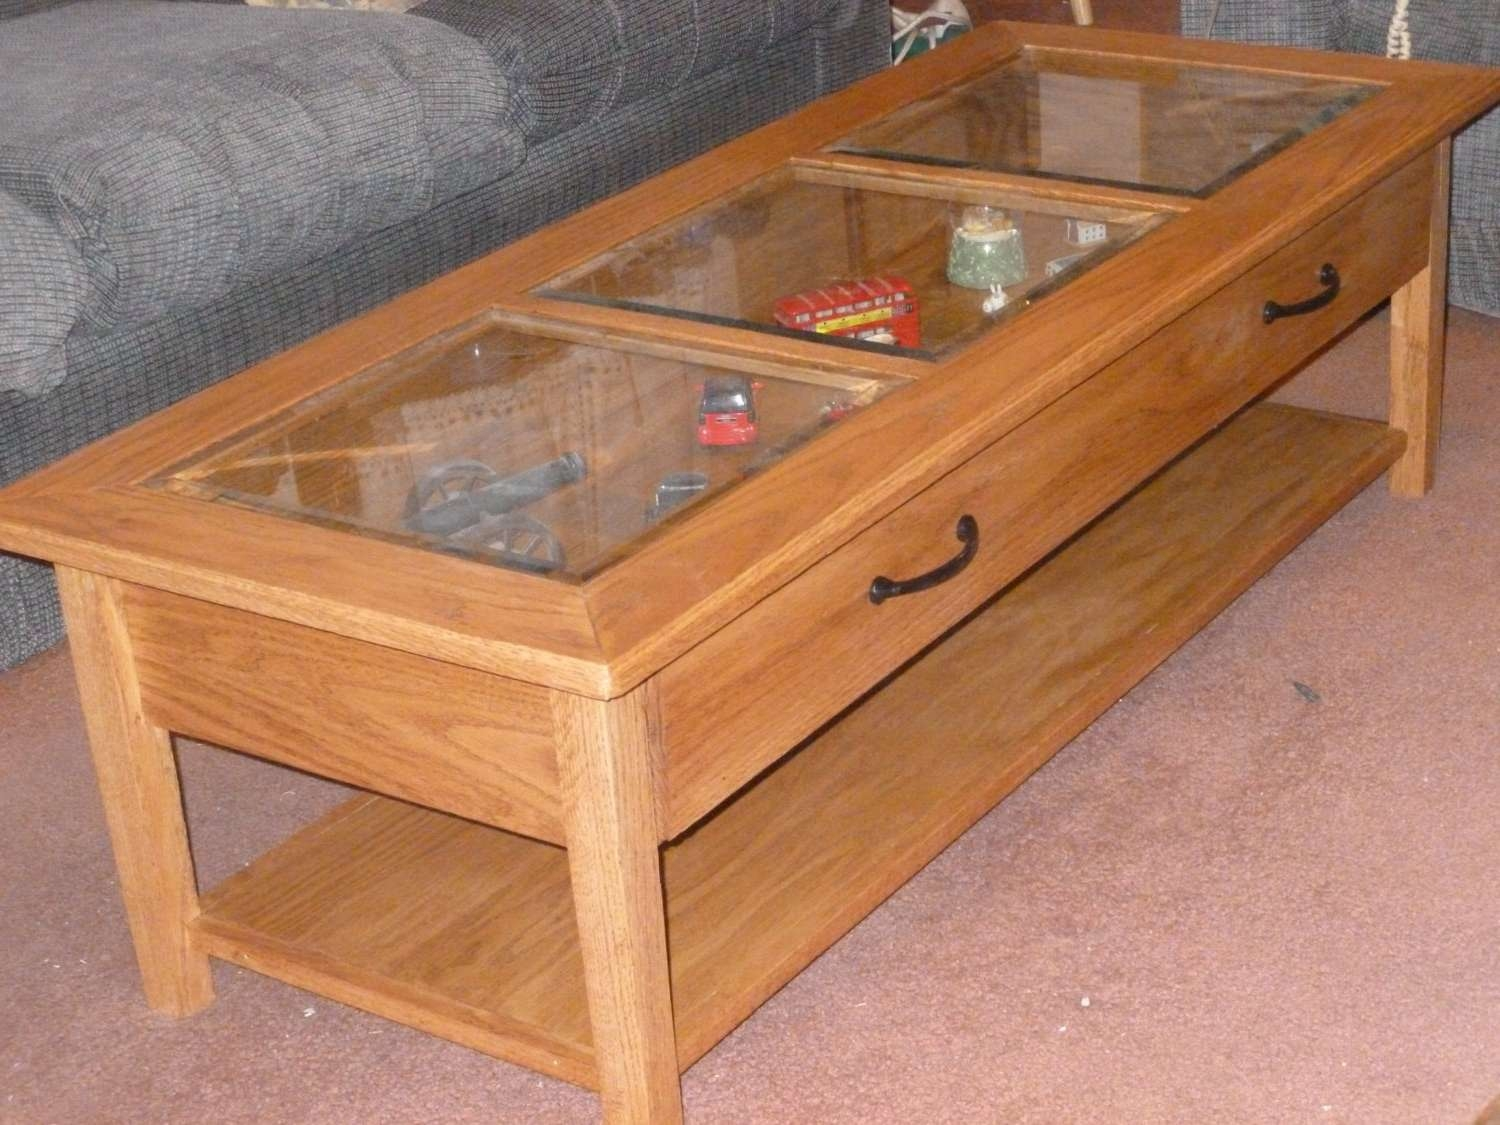 Glass Coffee Tables: Appealing Glass Topped Coffee Table Display With Regard To Most Popular Glass Coffee Tables With Storage (View 10 of 20)